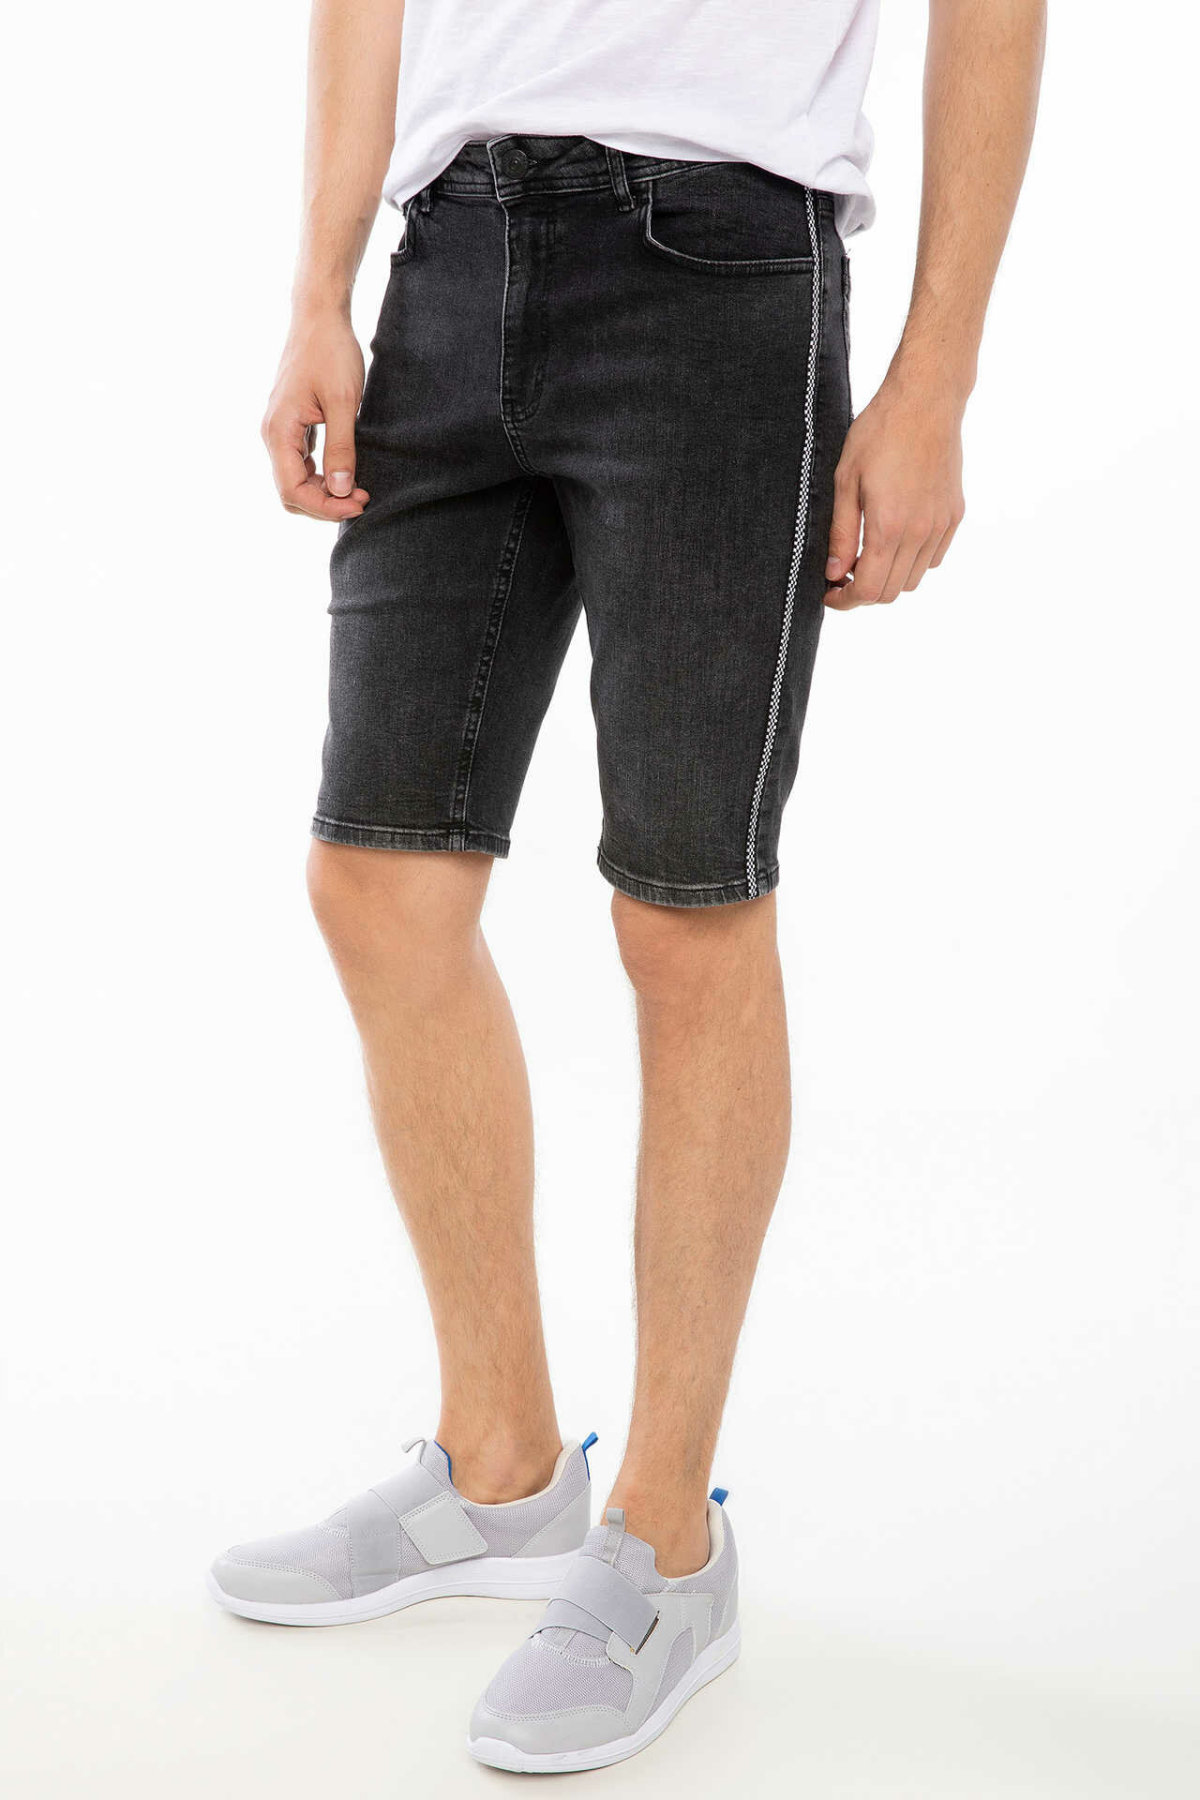 DeFacto Mens Summer Cool Black Denim Short Fit Mid-waist Short Denim Jeans Bermuda K0286AZ18HSNM40-K0286AZ18HS